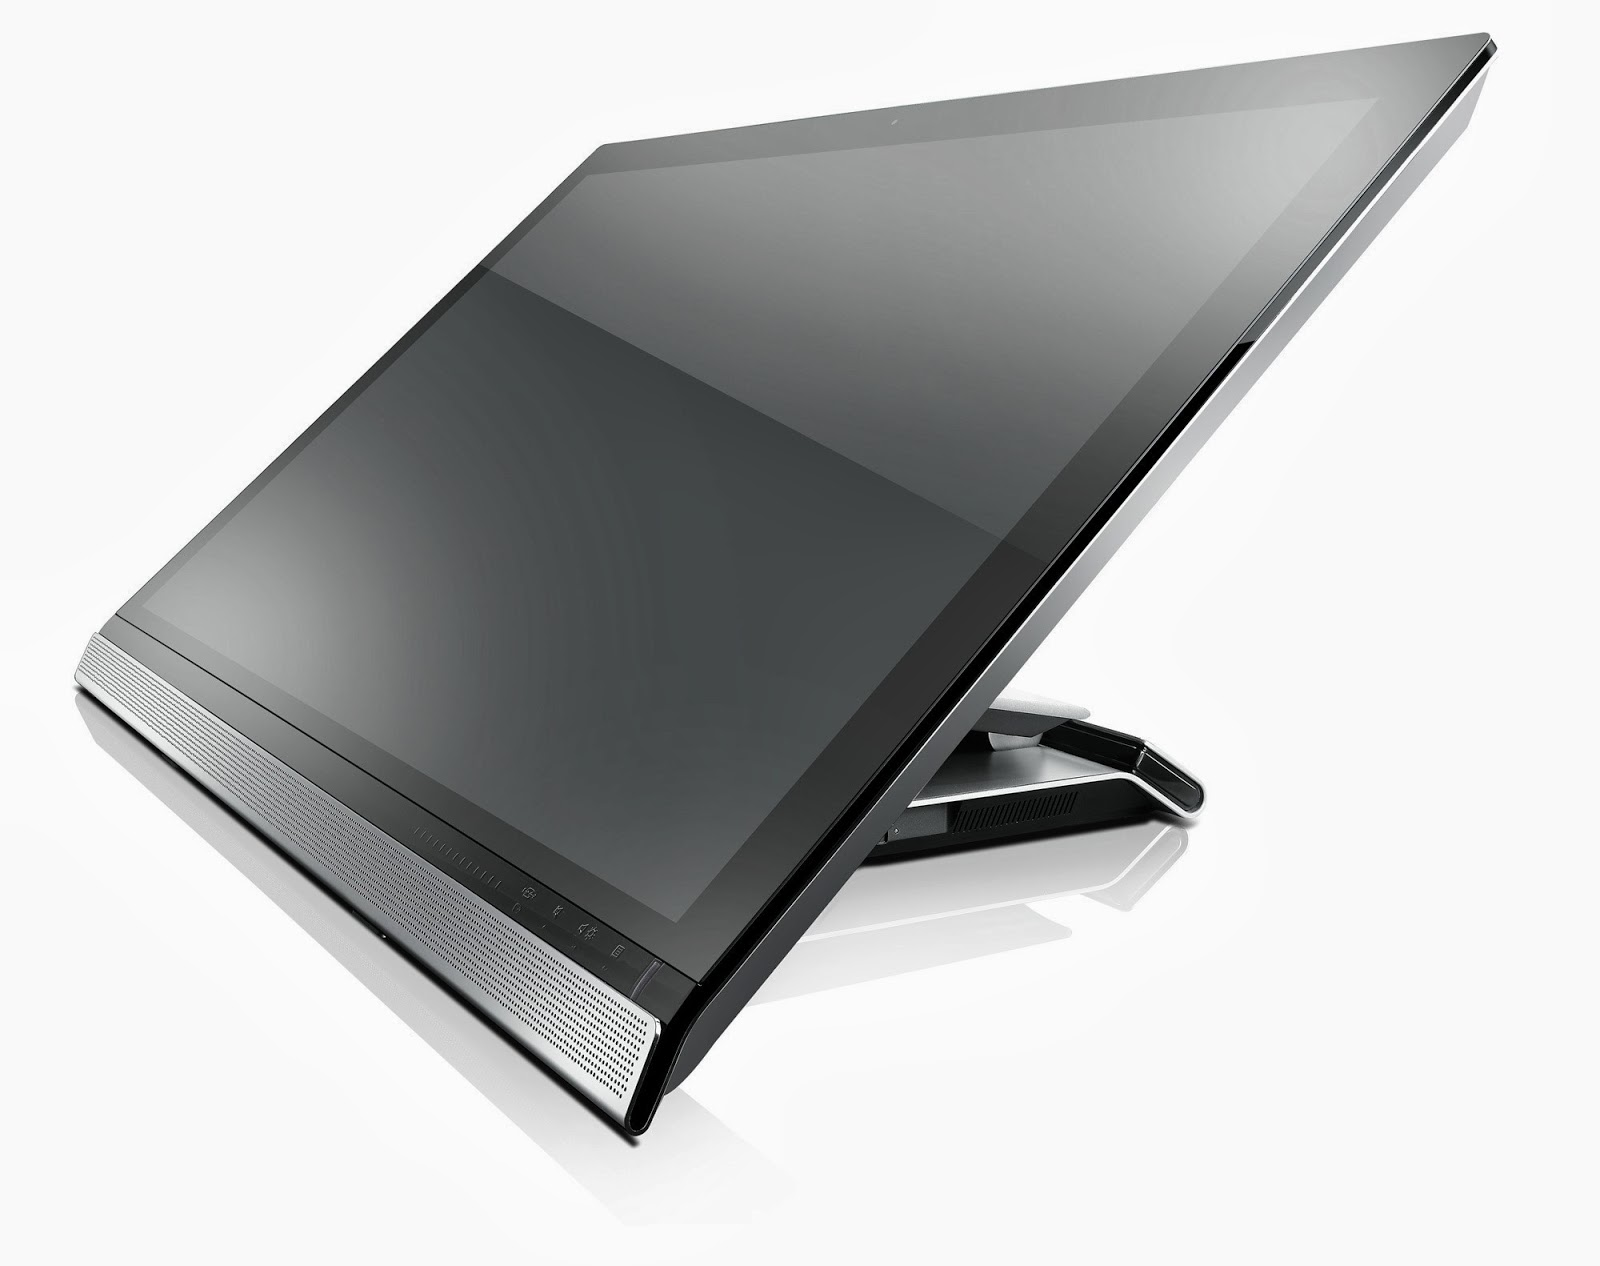 lenovo-thinkvision-28-4k-display-announced